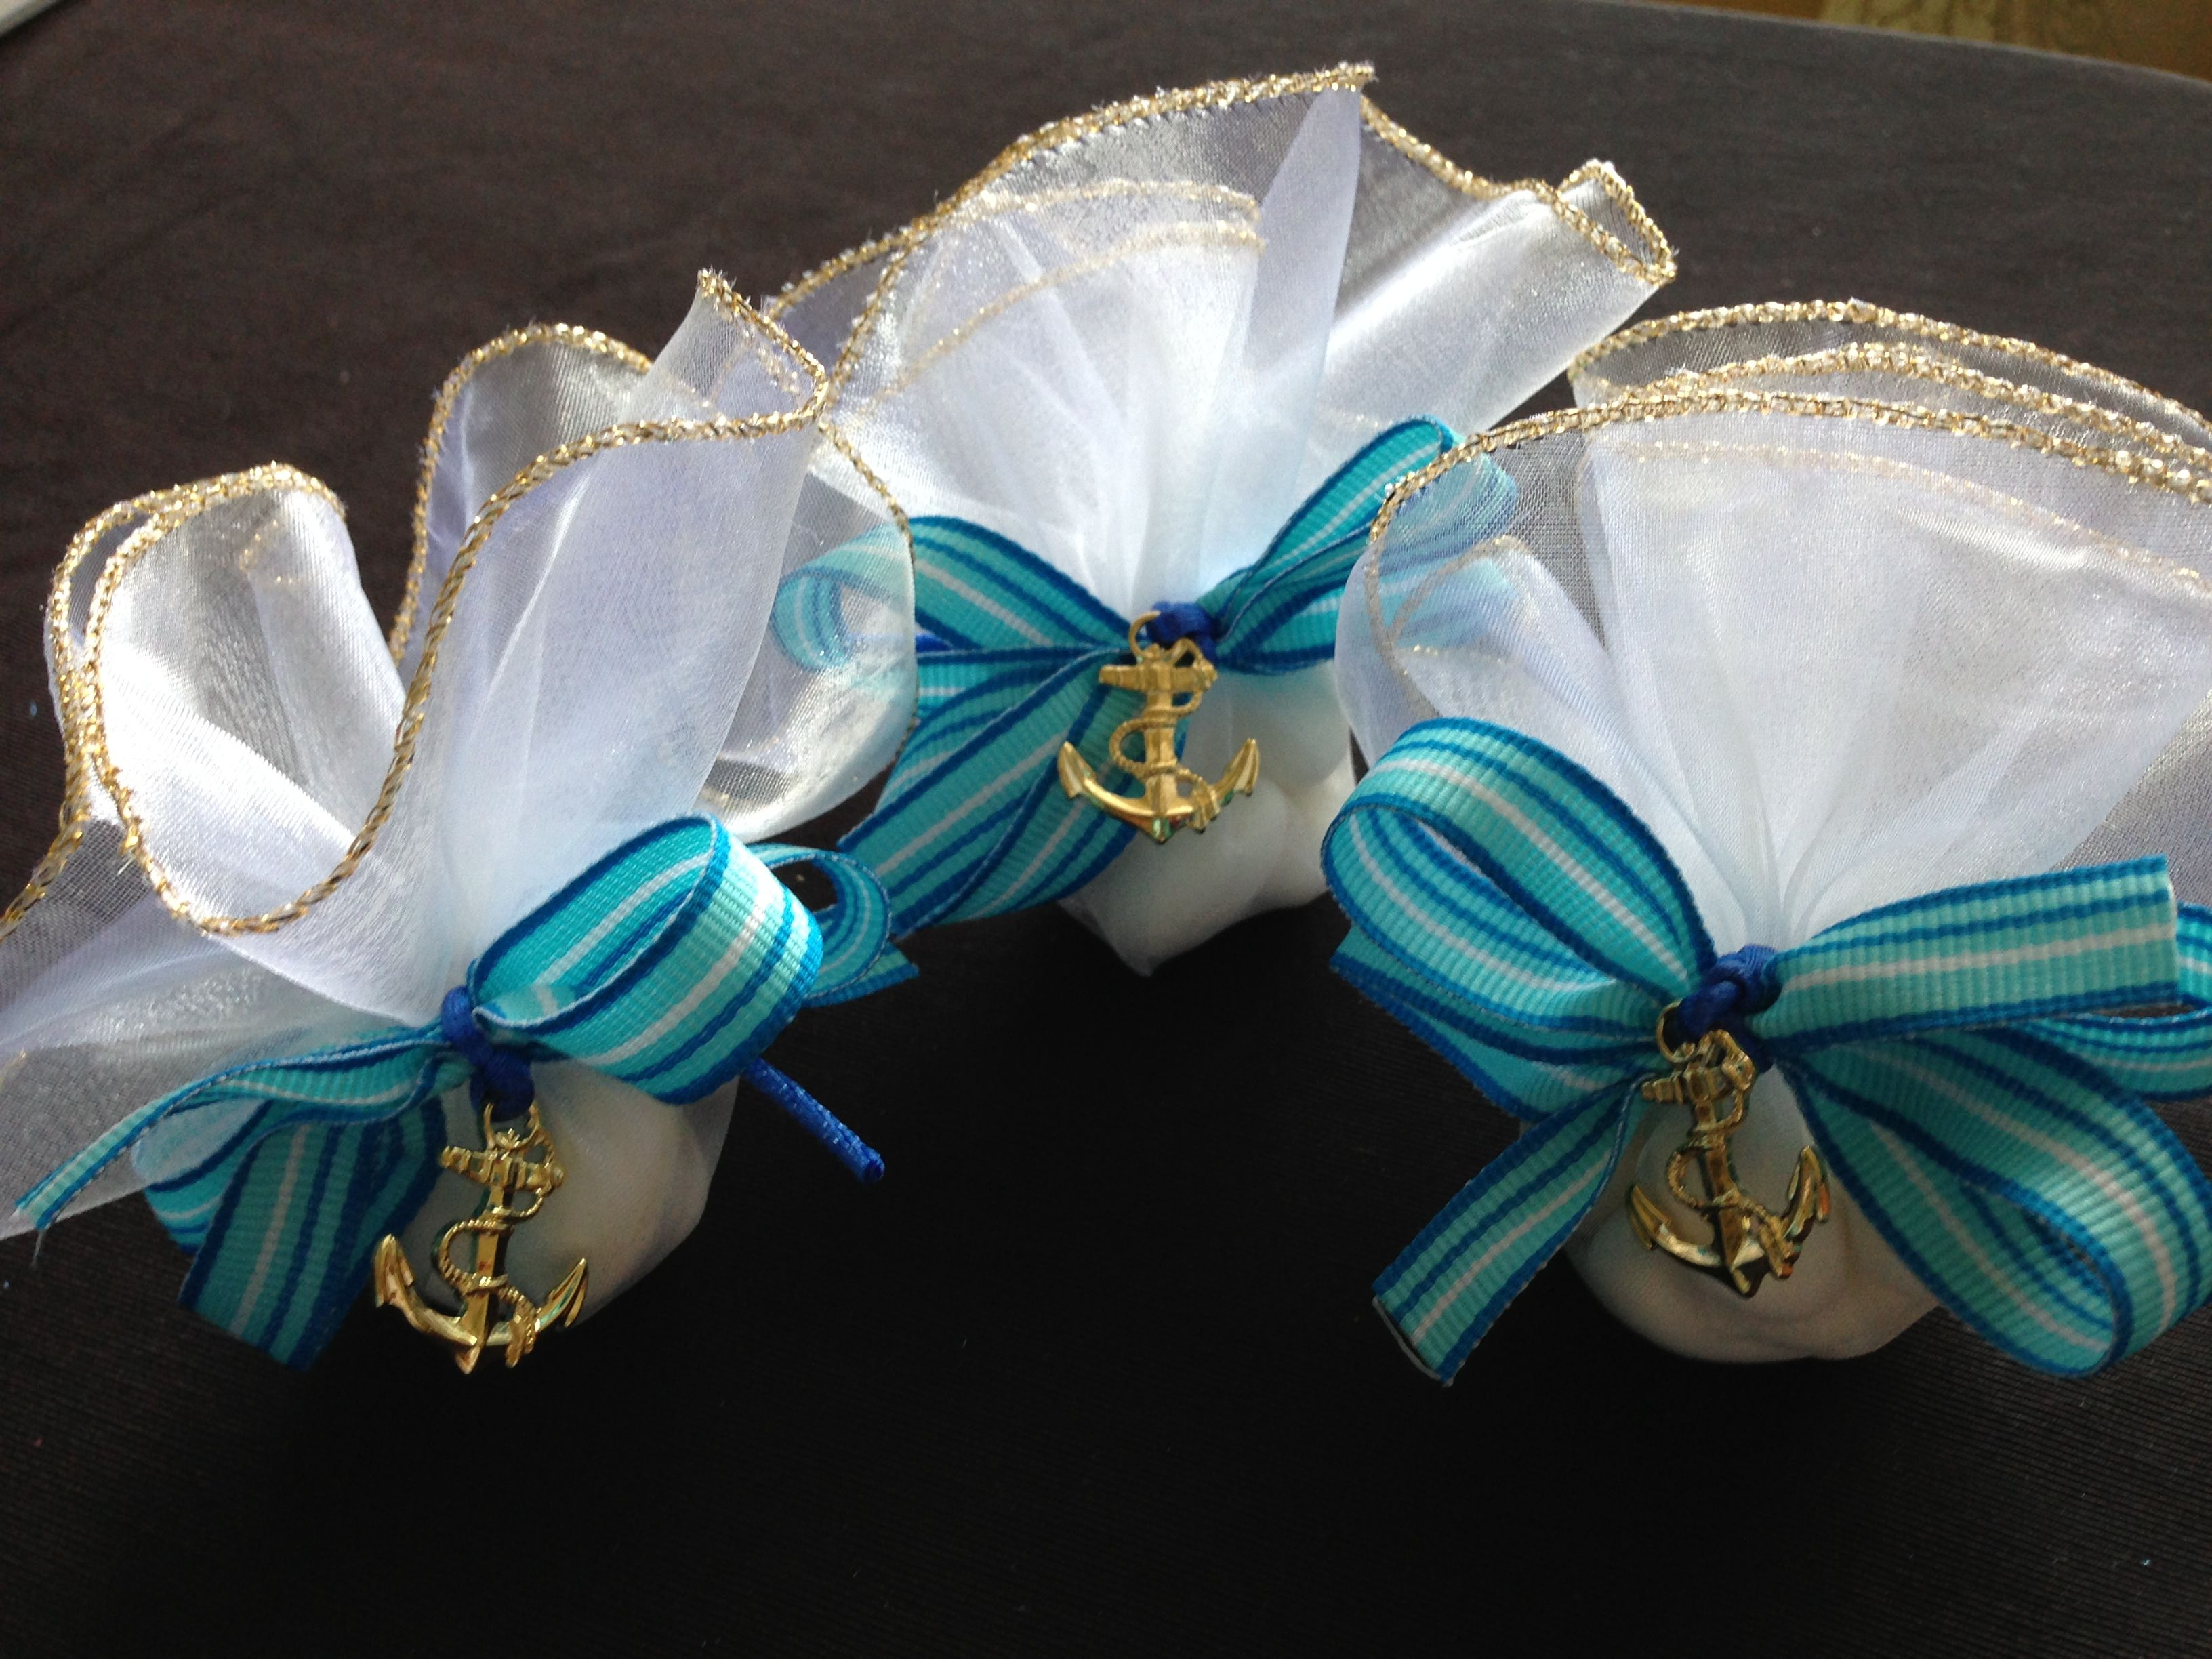 Sailor themed party favors for a special boy baptism